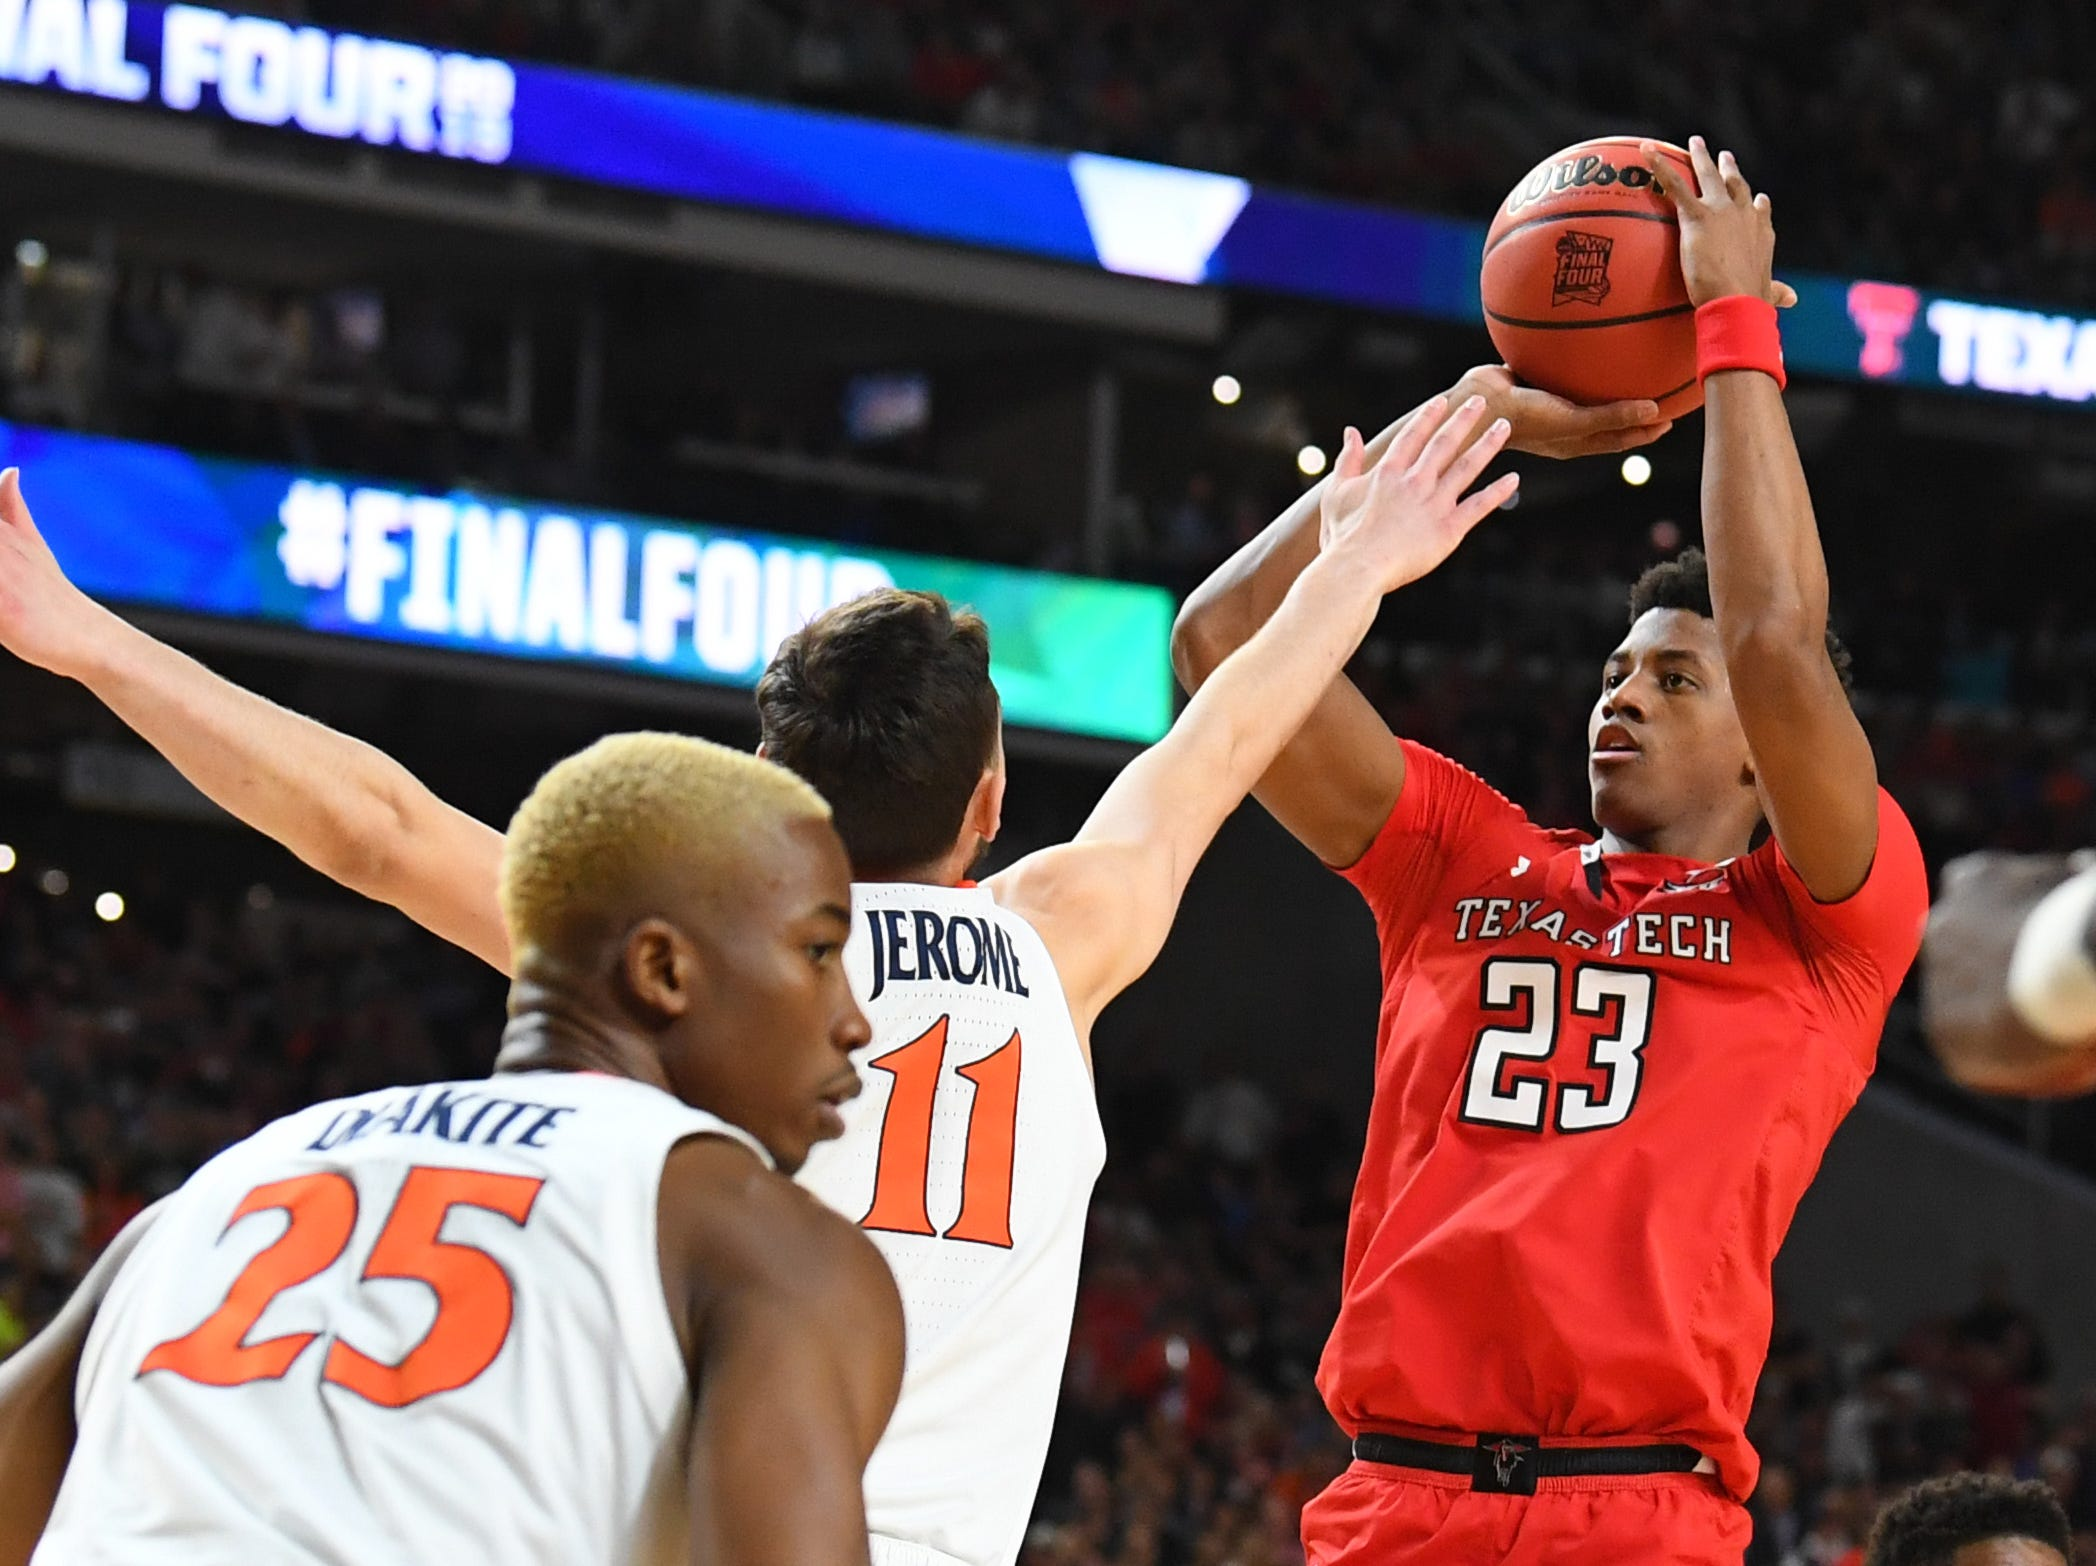 Apr 8, 2019; Minneapolis, MN, USA; Texas Tech Red Raiders guard Jarrett Culver (23) shoots the ball over Virginia Cavaliers guard Ty Jerome (11) in the championship game of the 2019 men's Final Four at US Bank Stadium. Mandatory Credit: Robert Deutsch-USA TODAY Sports